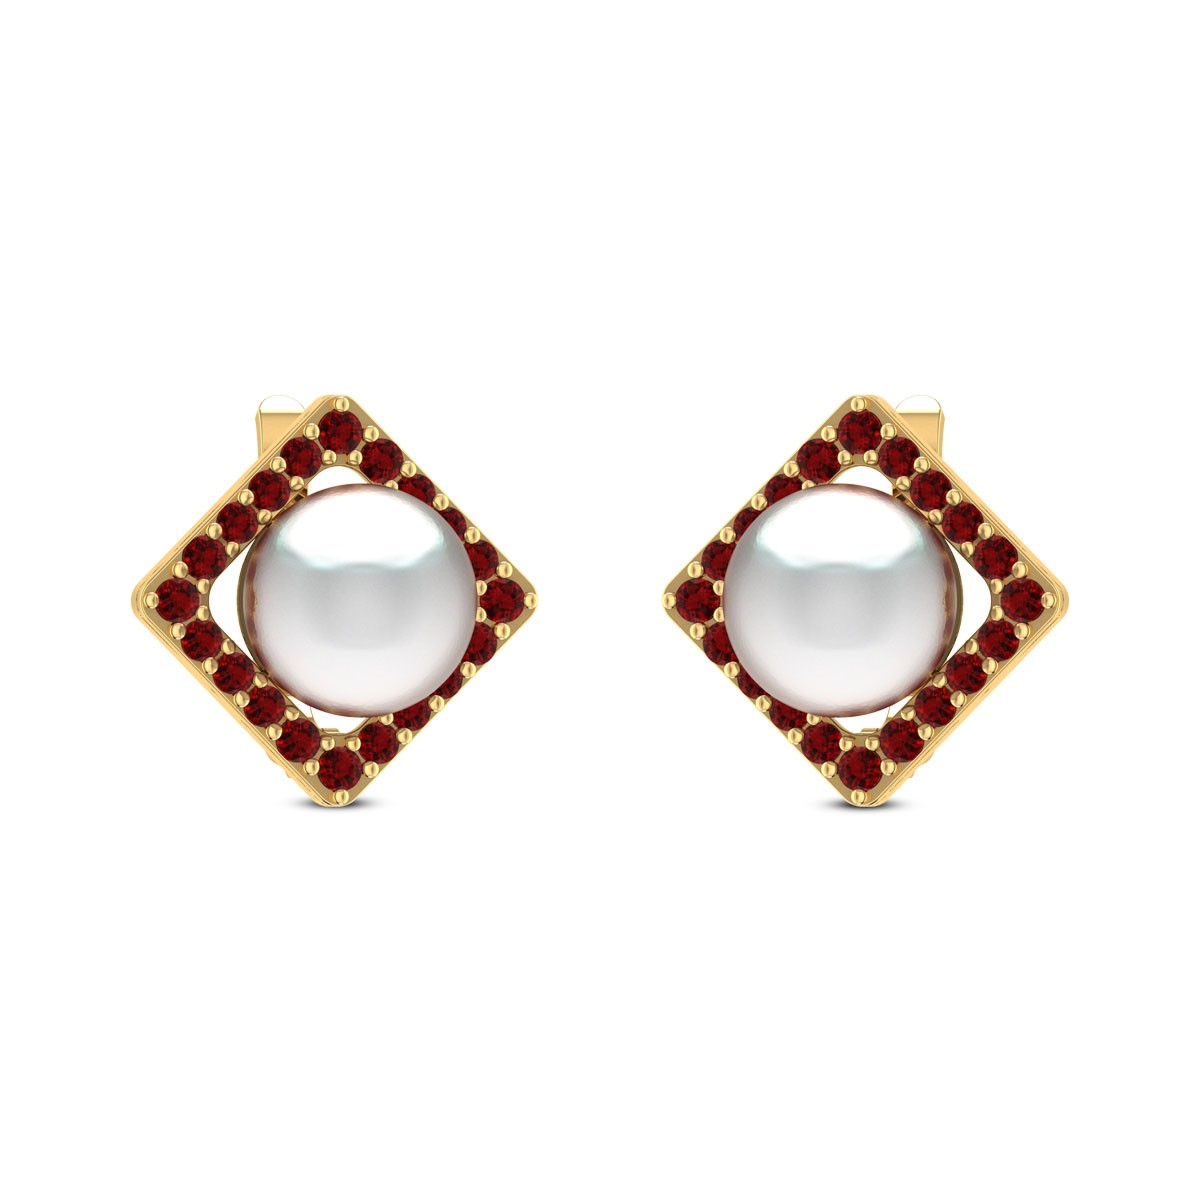 Bahar Ruby Pearl Stud Earrings